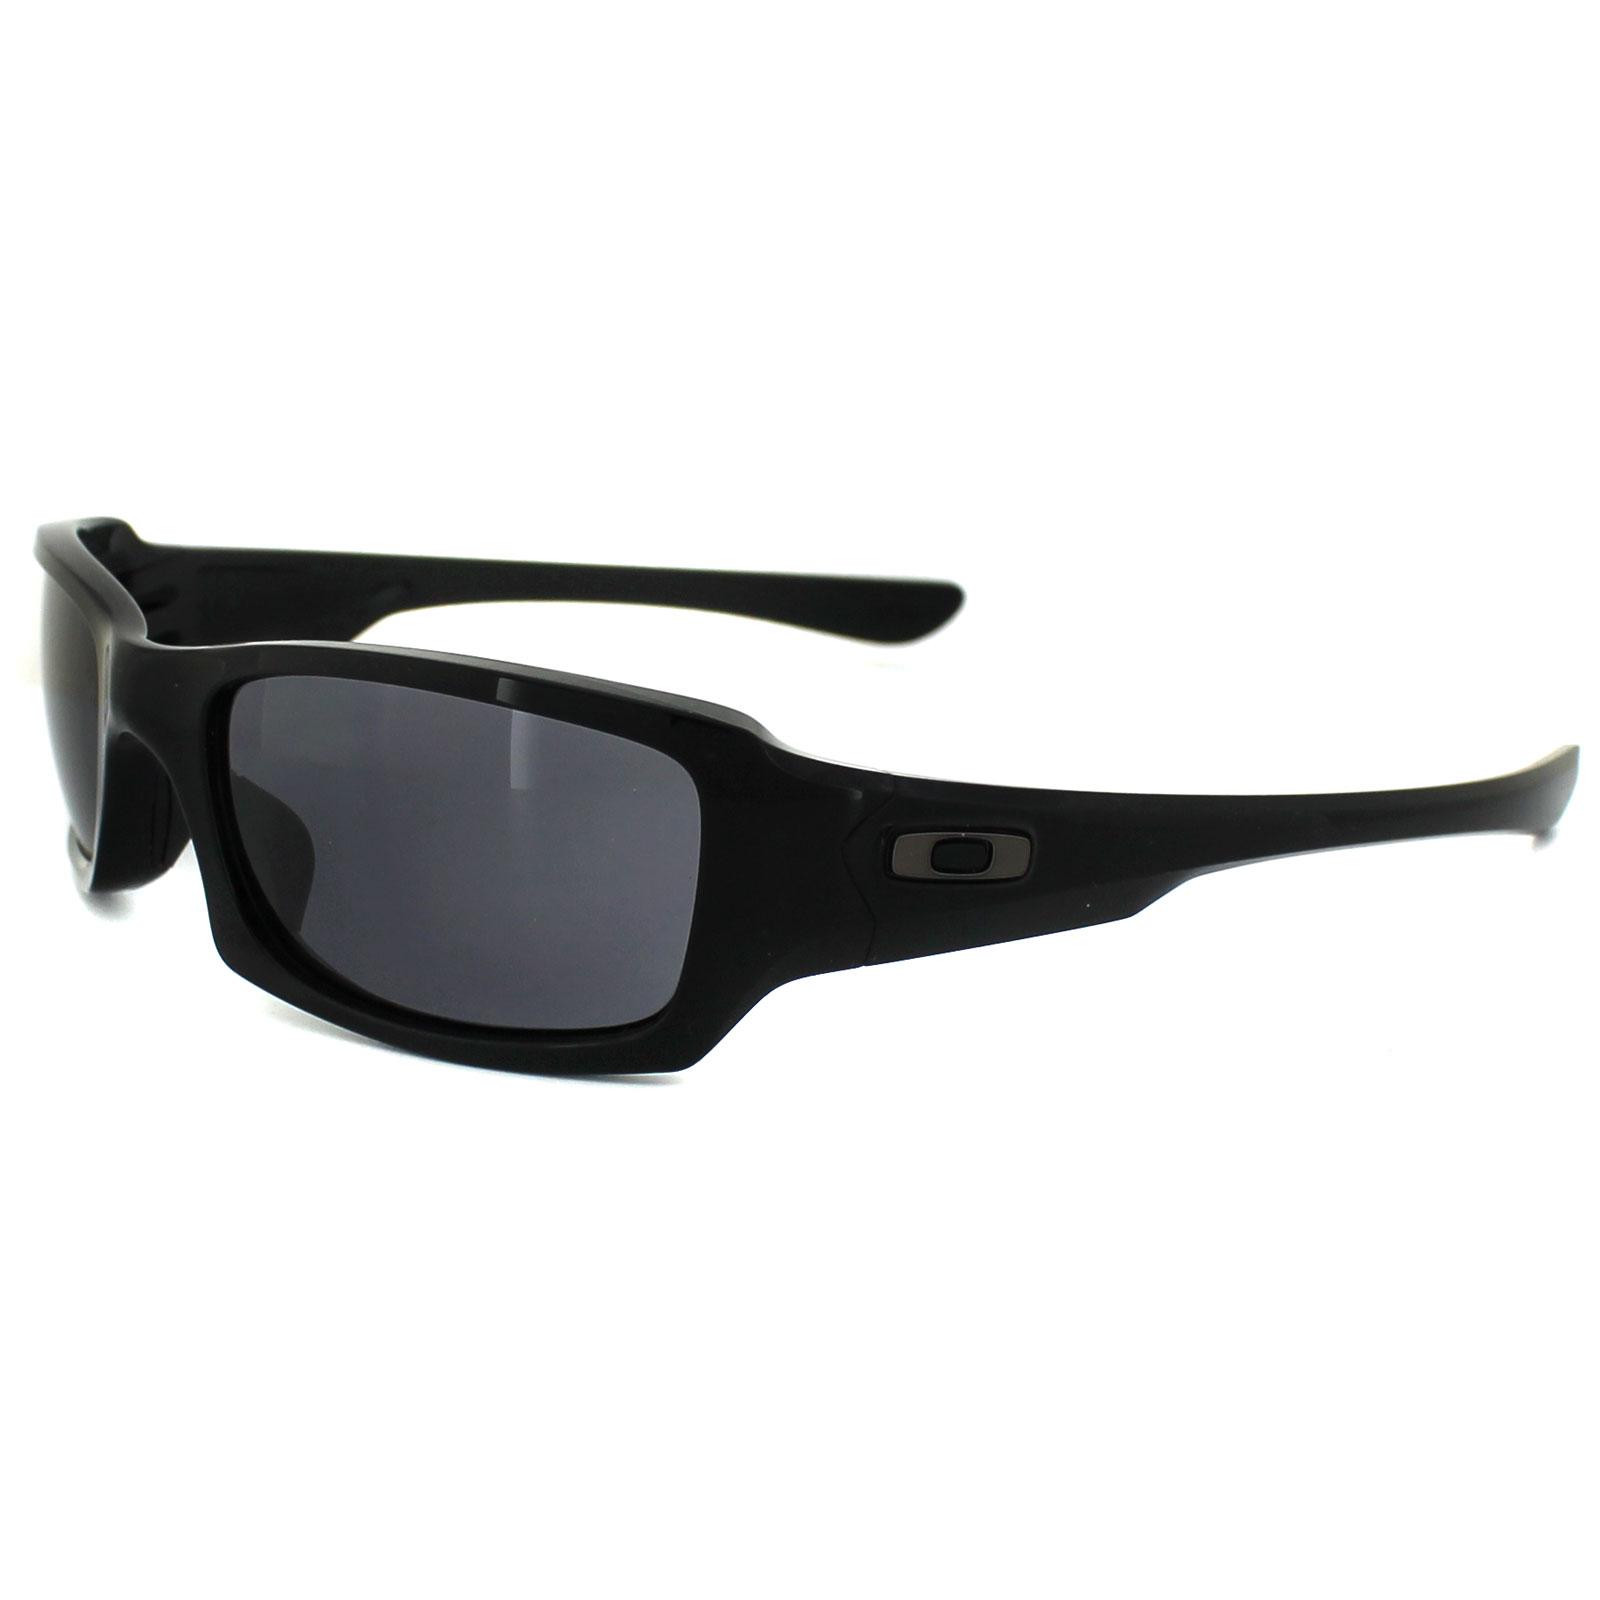 womens oakley sunglasses cheap  Cheap Oakley Sunglasses - Discounted Sunglasses